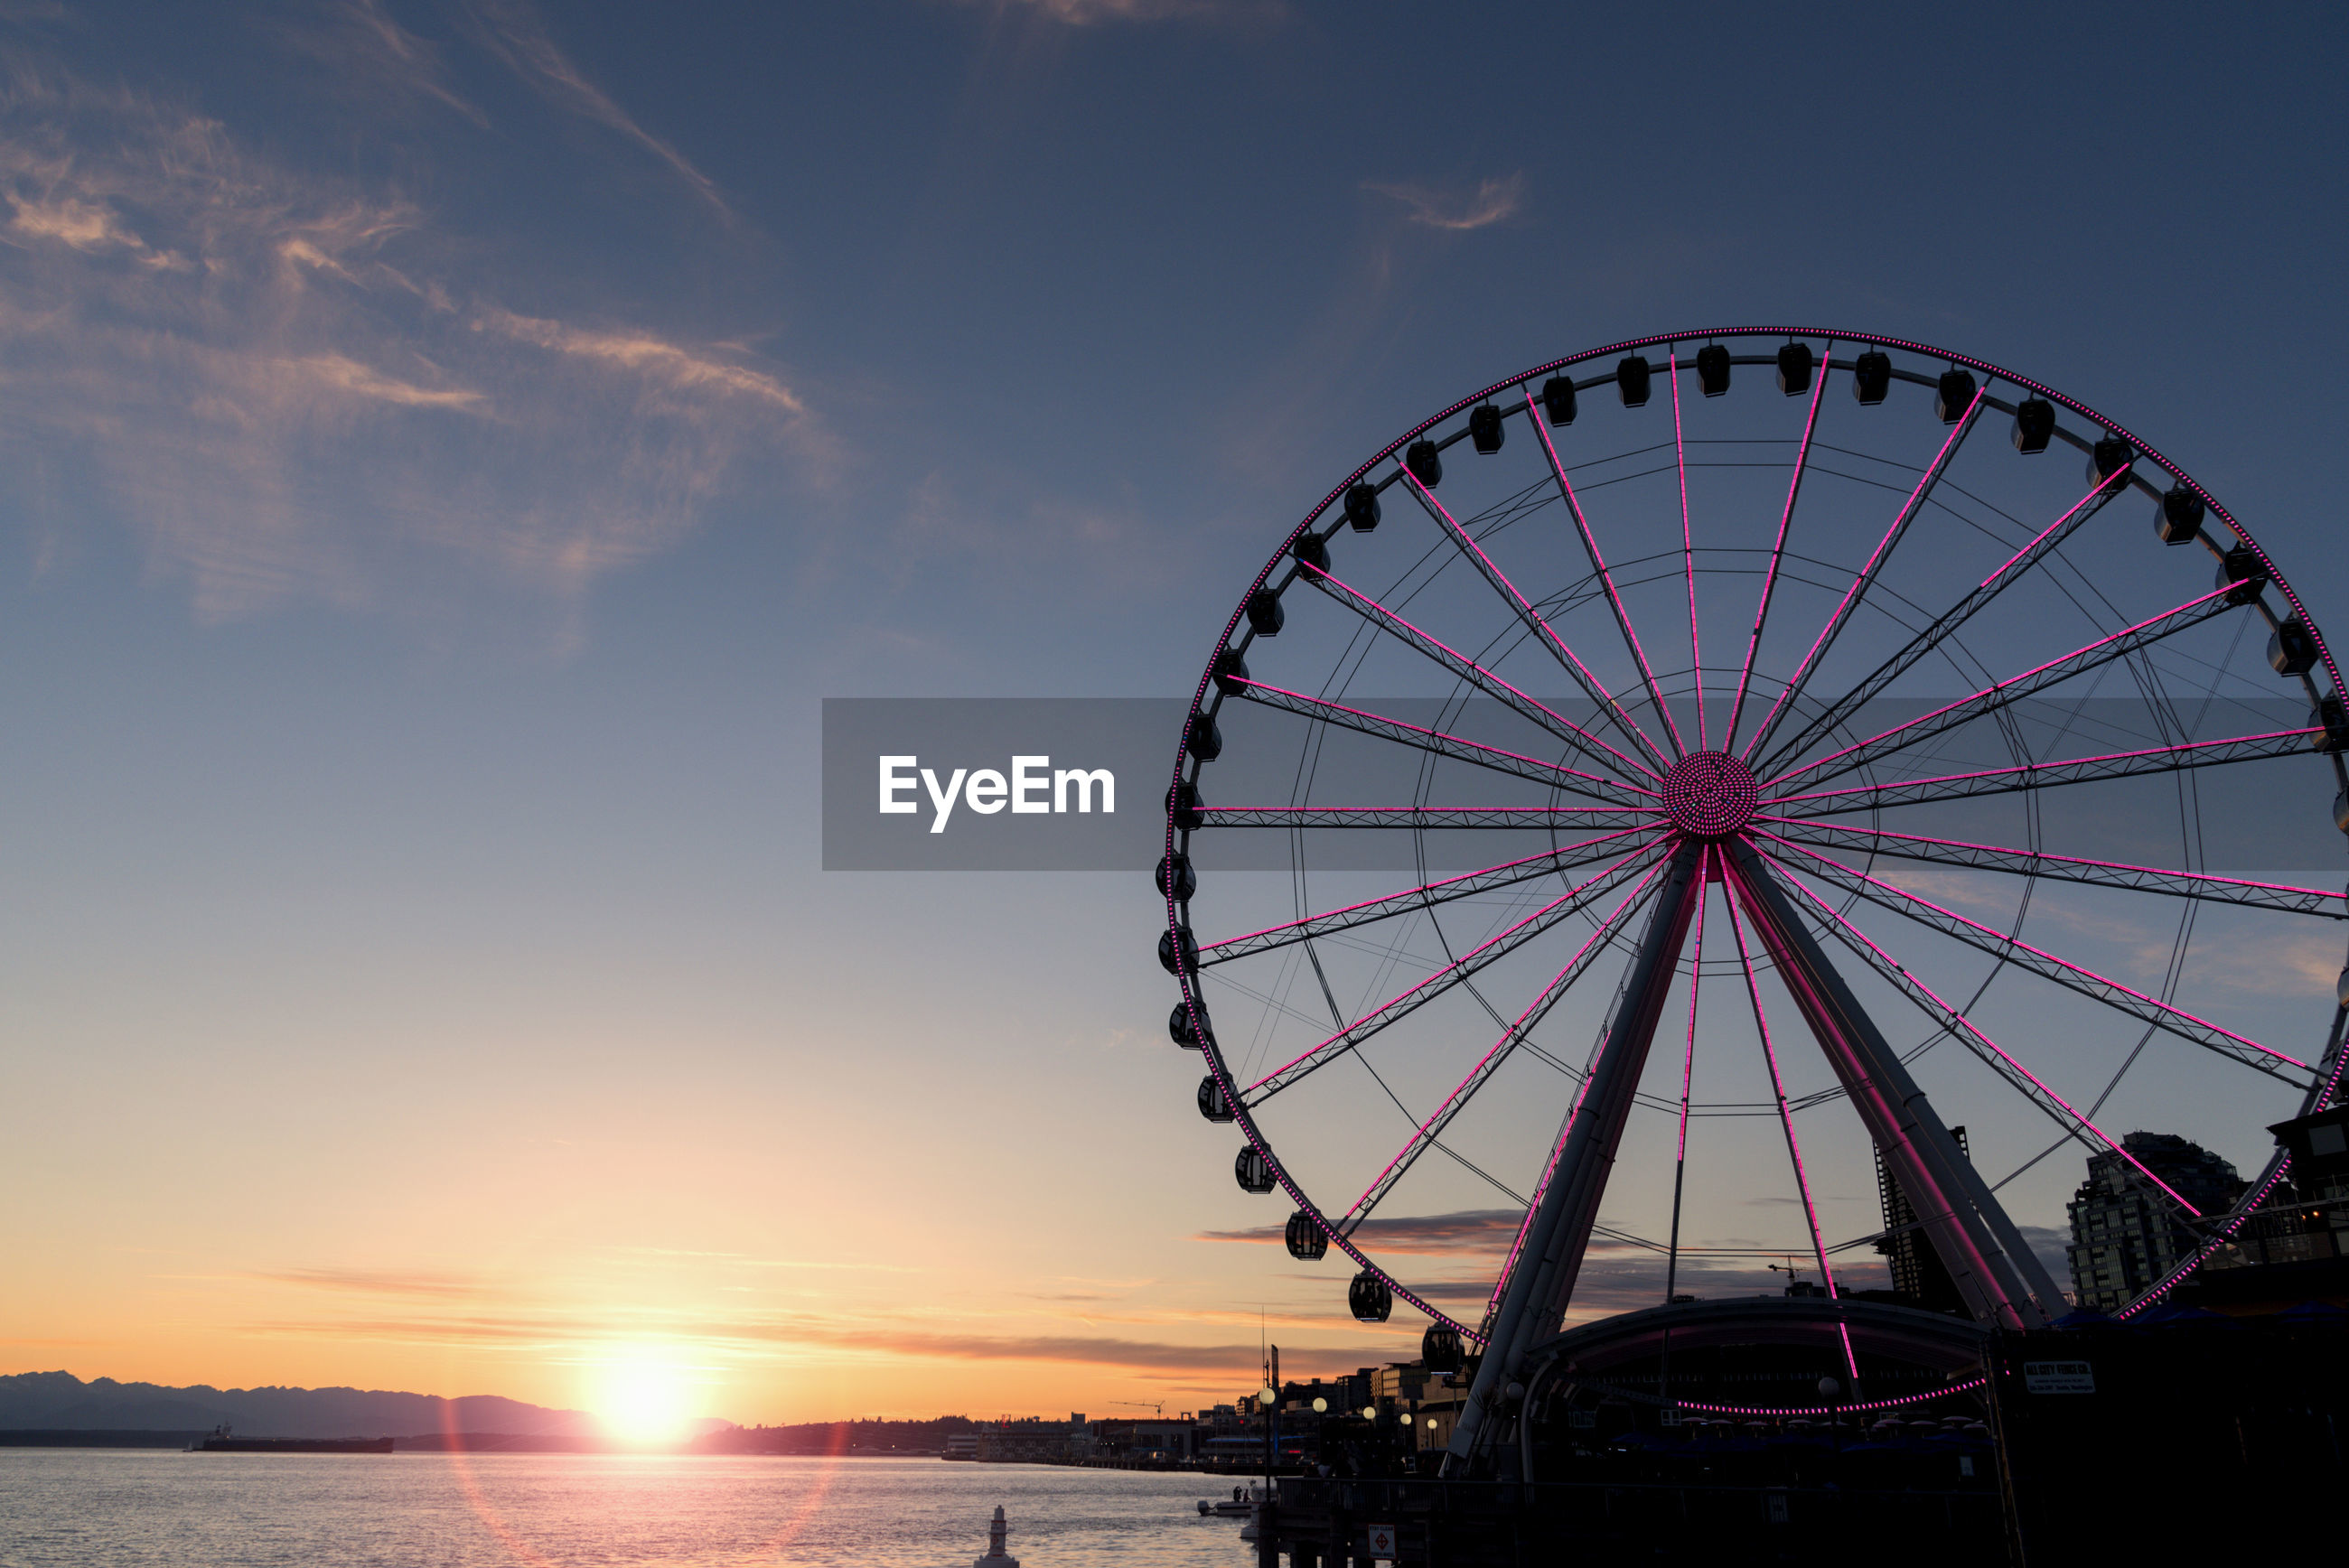 Low angle view of illuminated ferris wheel by sea against sky during sunset